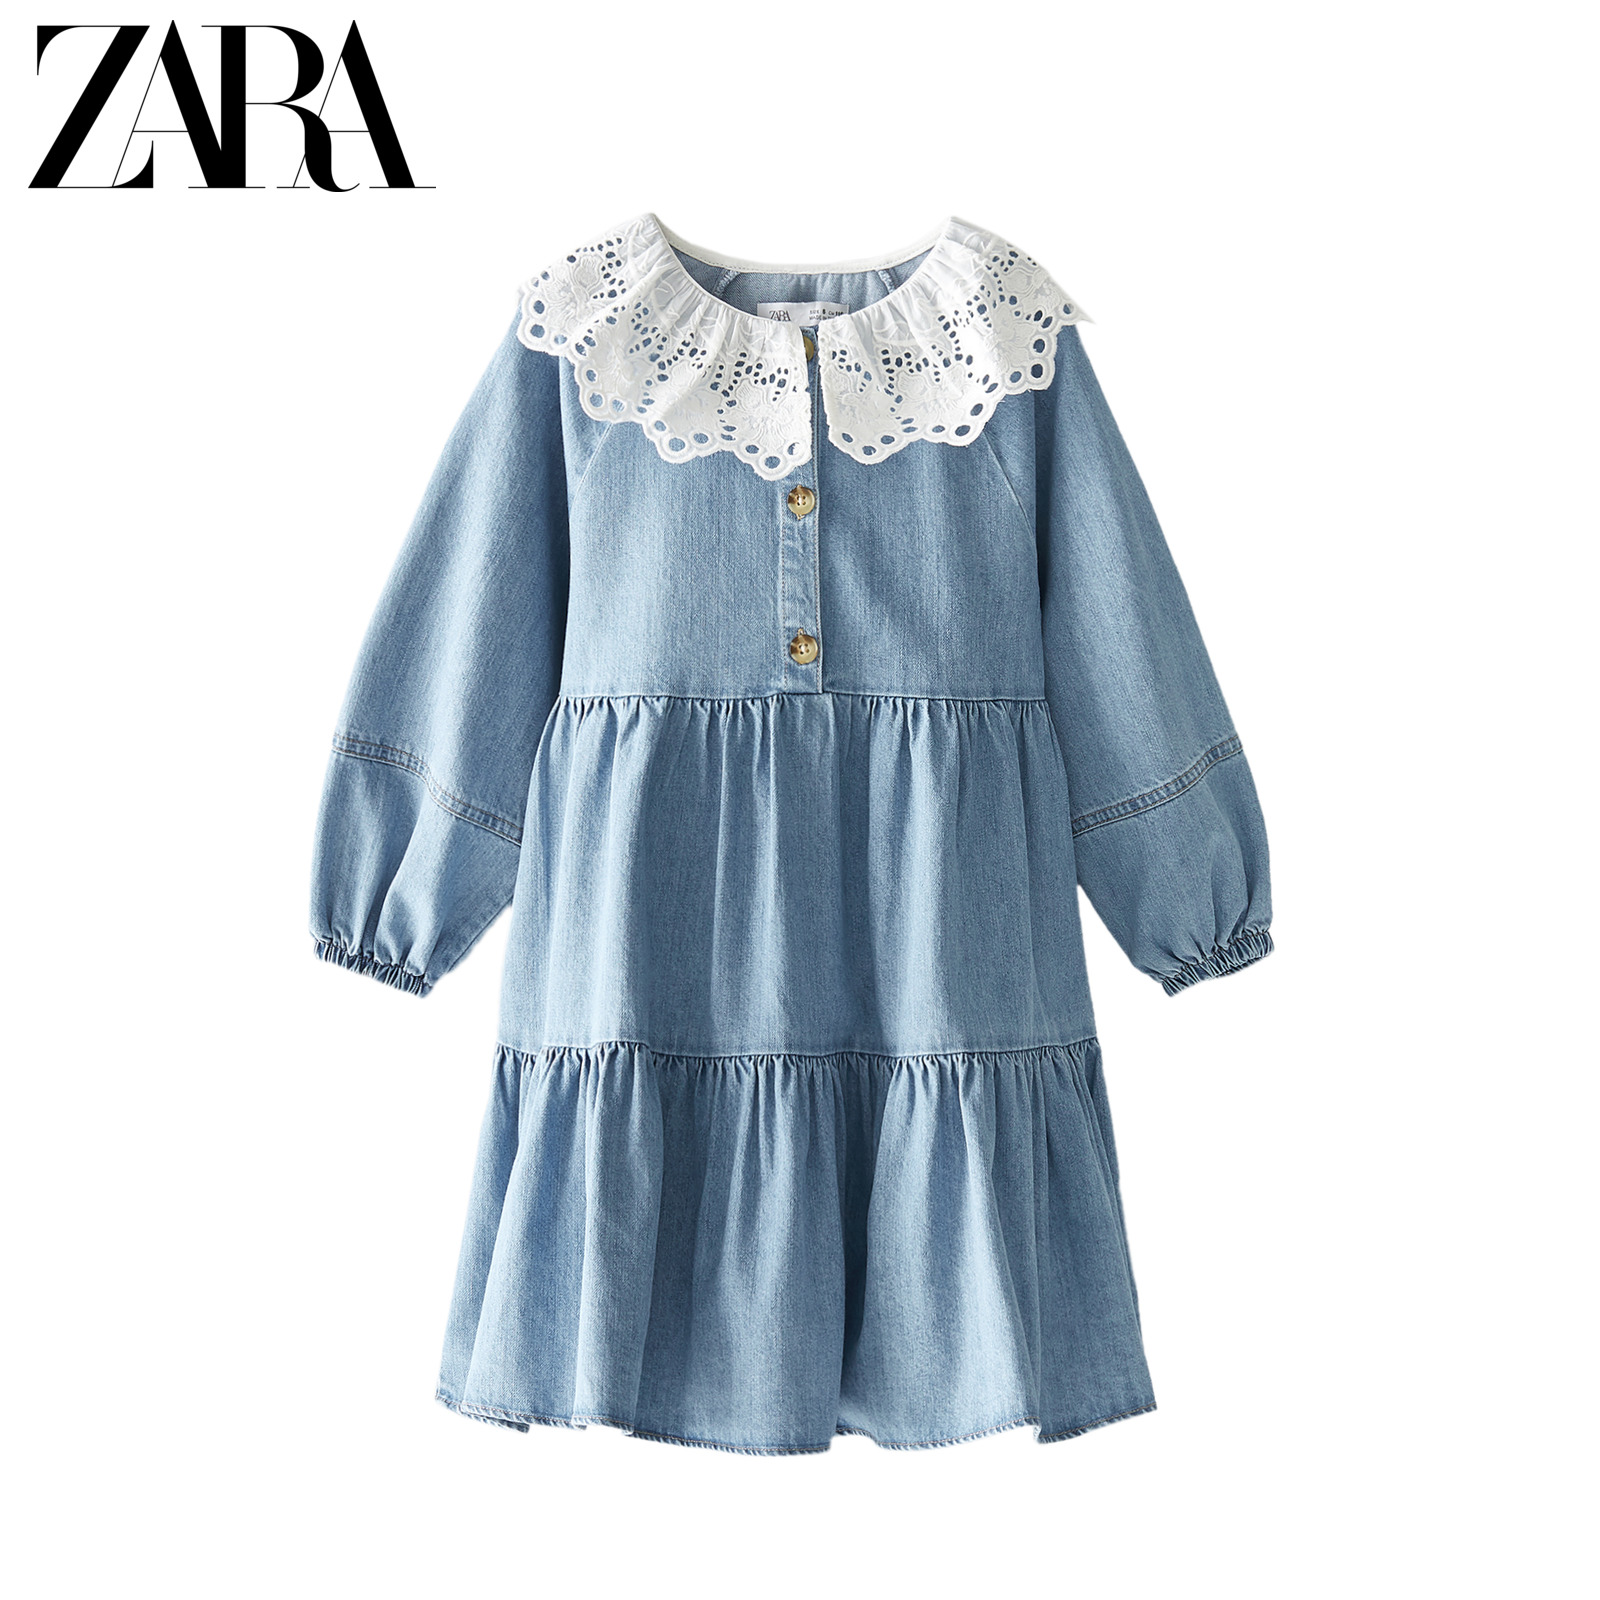 Zara new children's wear girl's jeans doll dress 05216601400